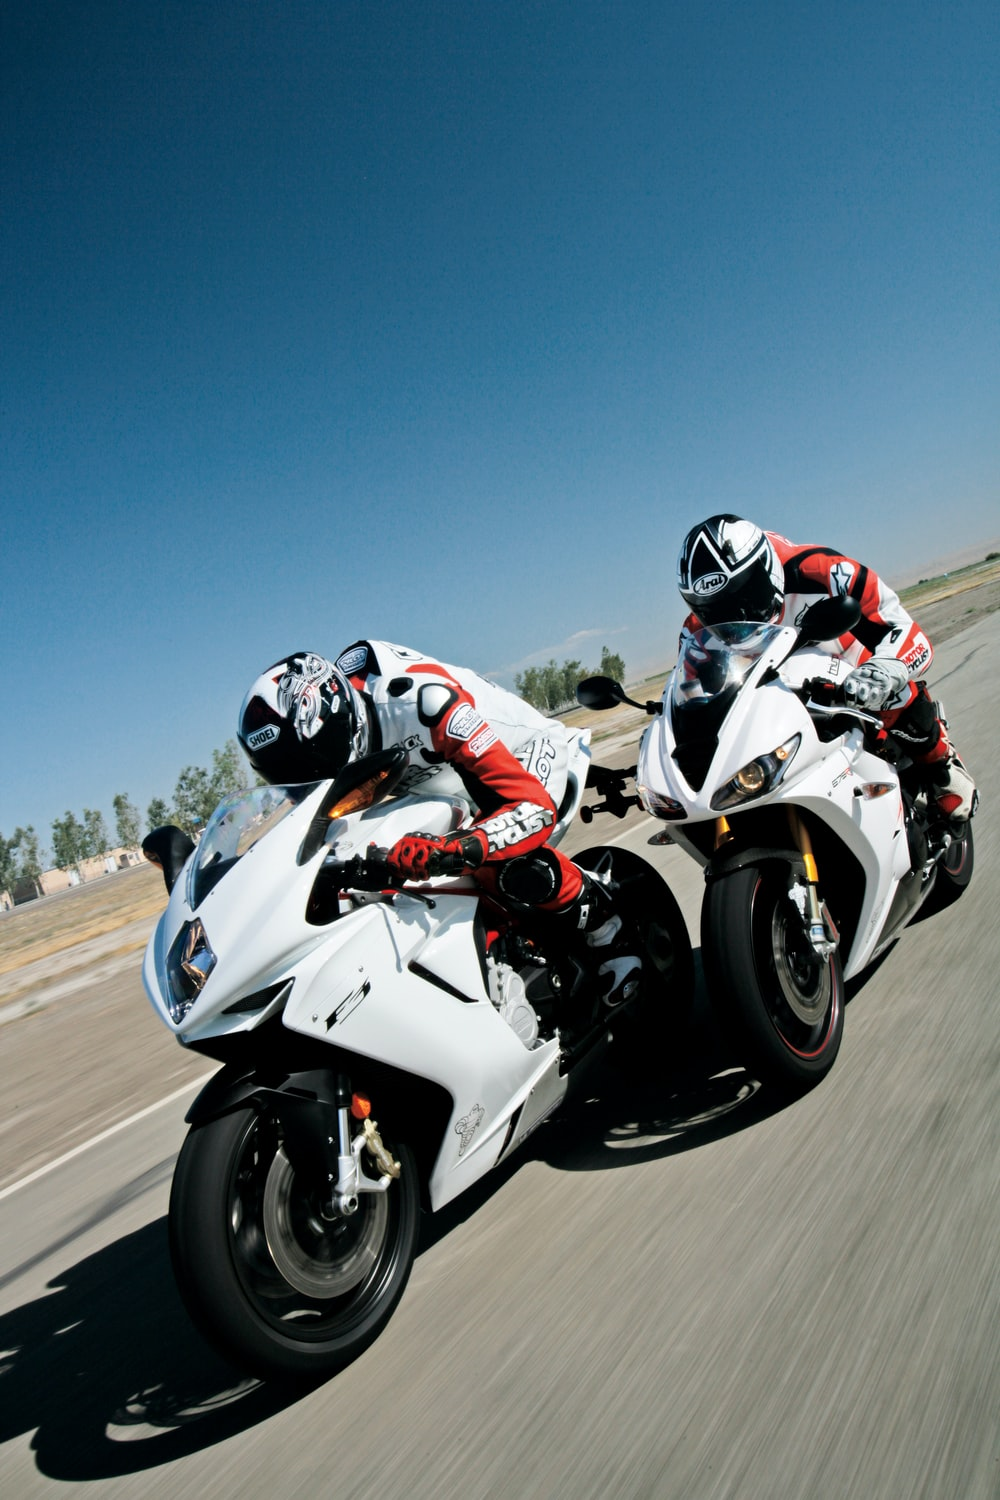 two people riding sports bikes on gray asphalt road during daytime